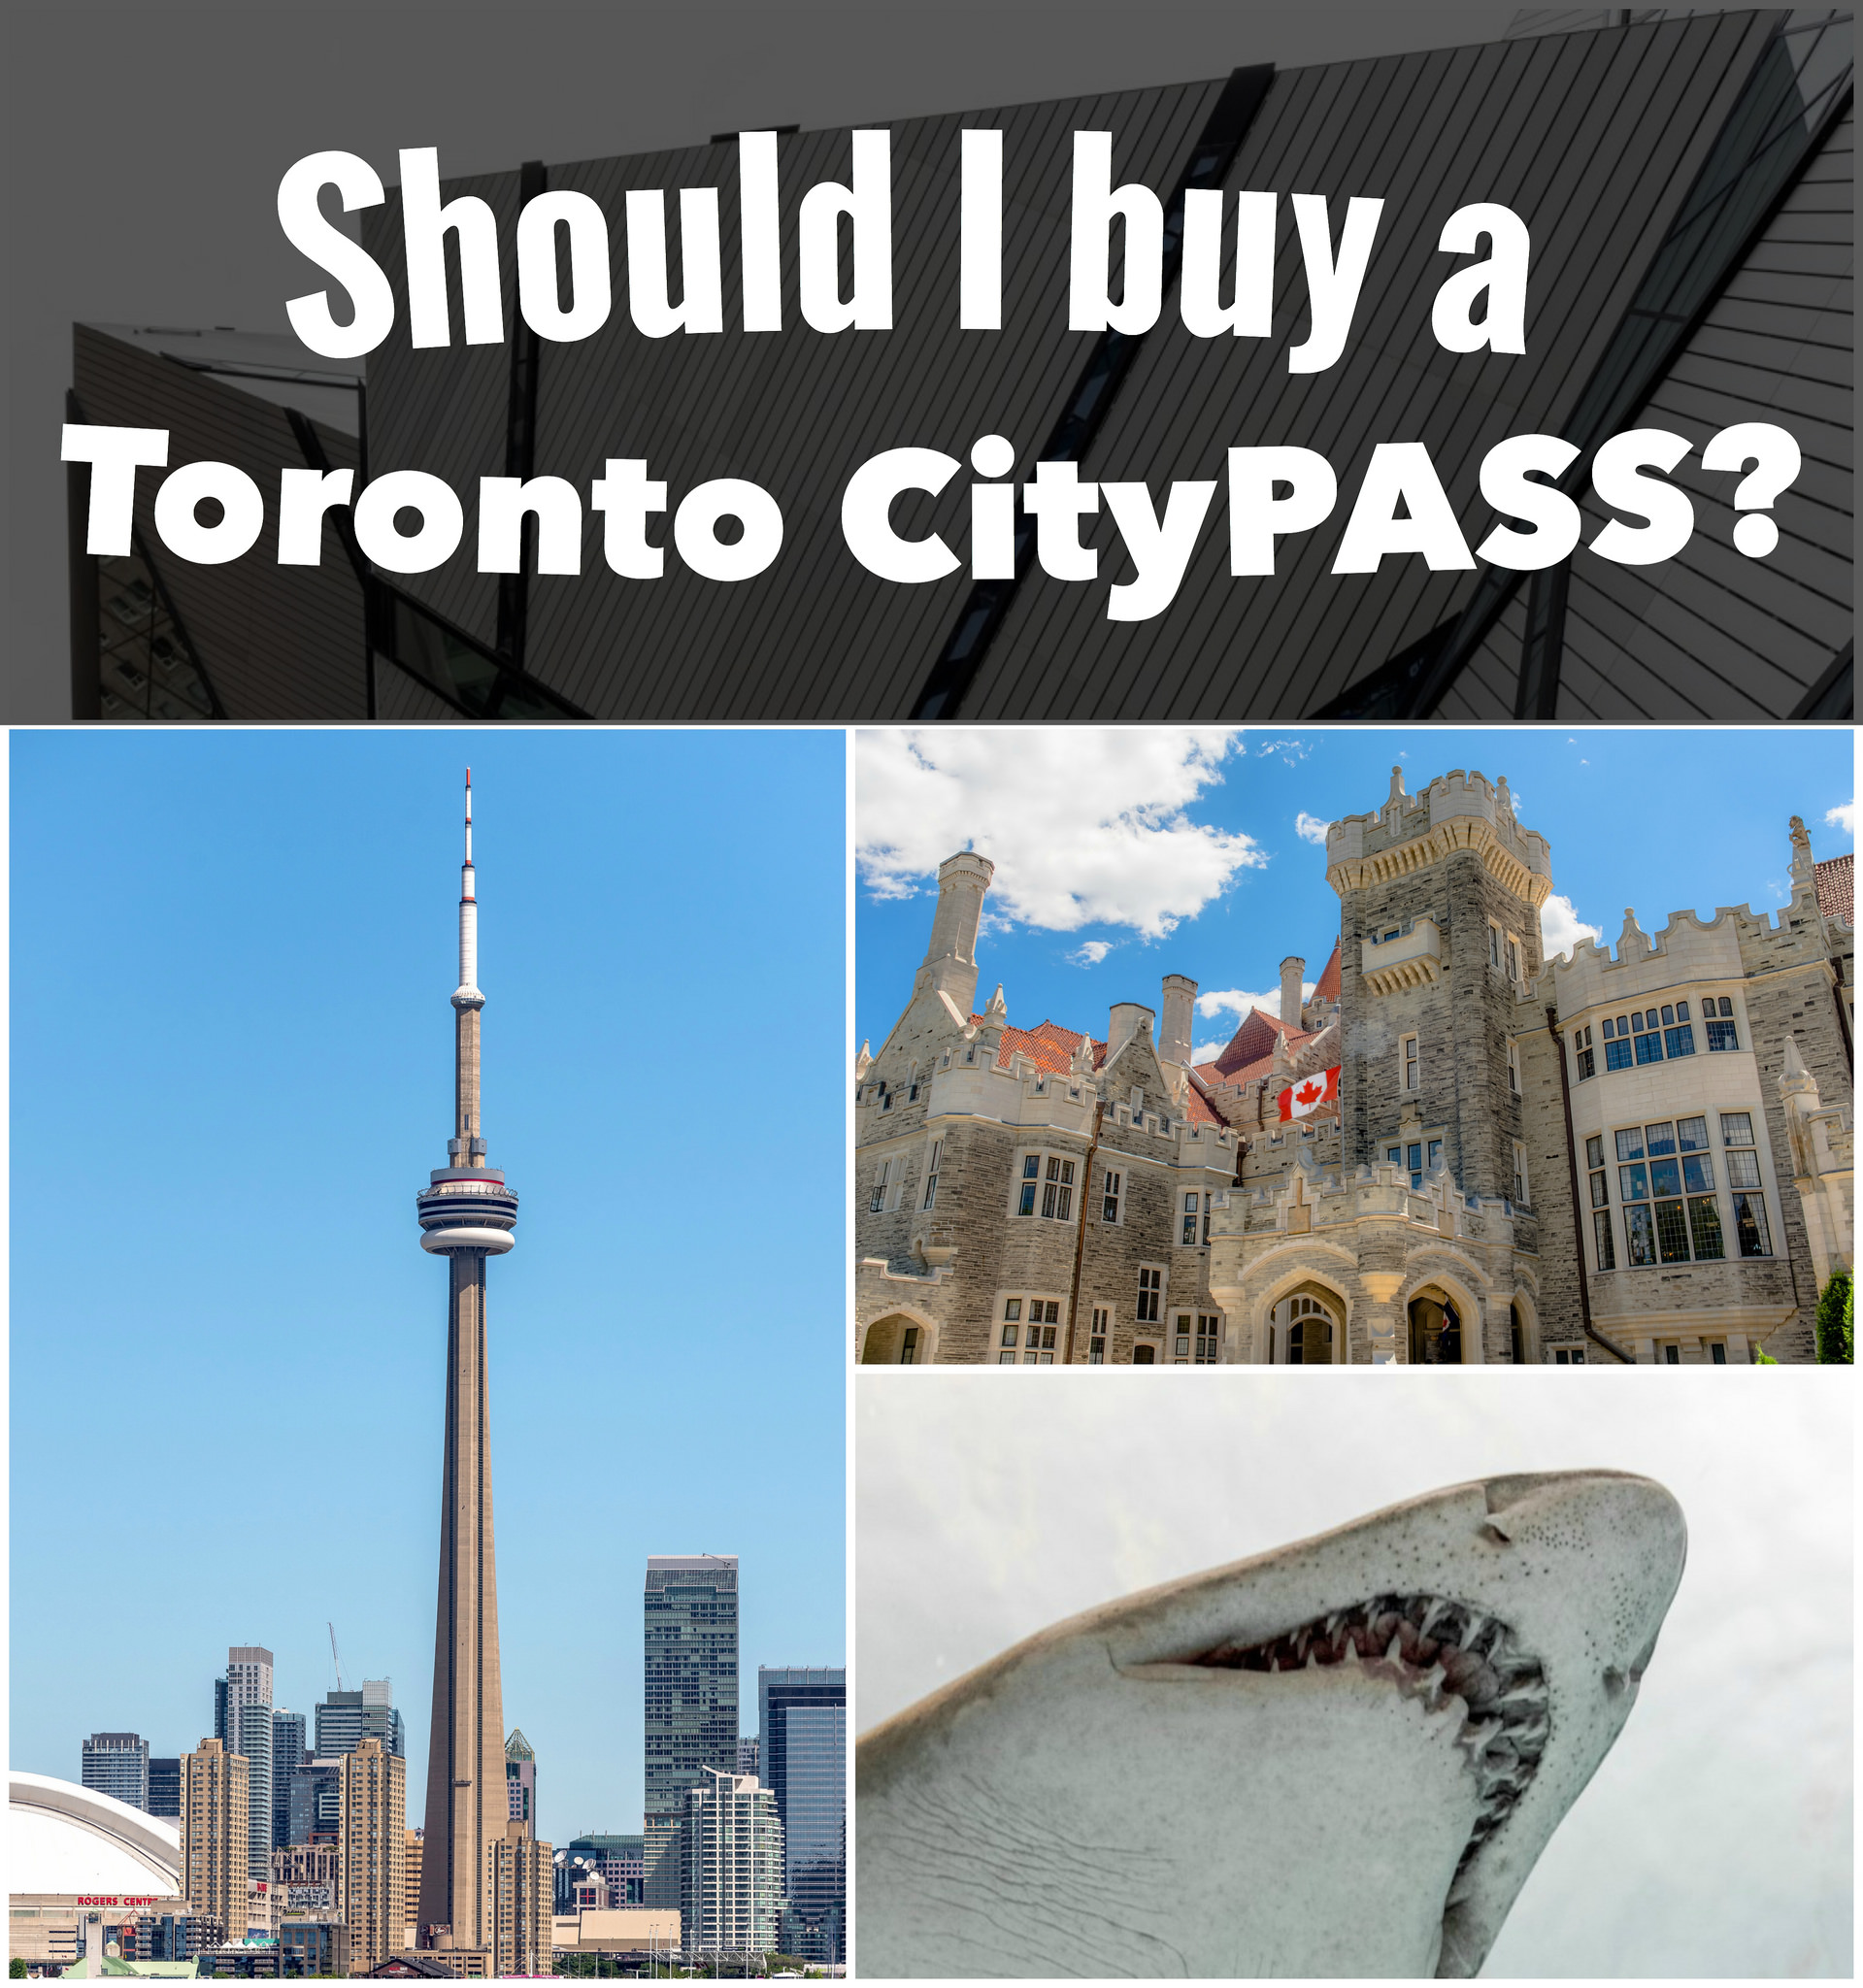 Should I buy a Toronto CityPASS?